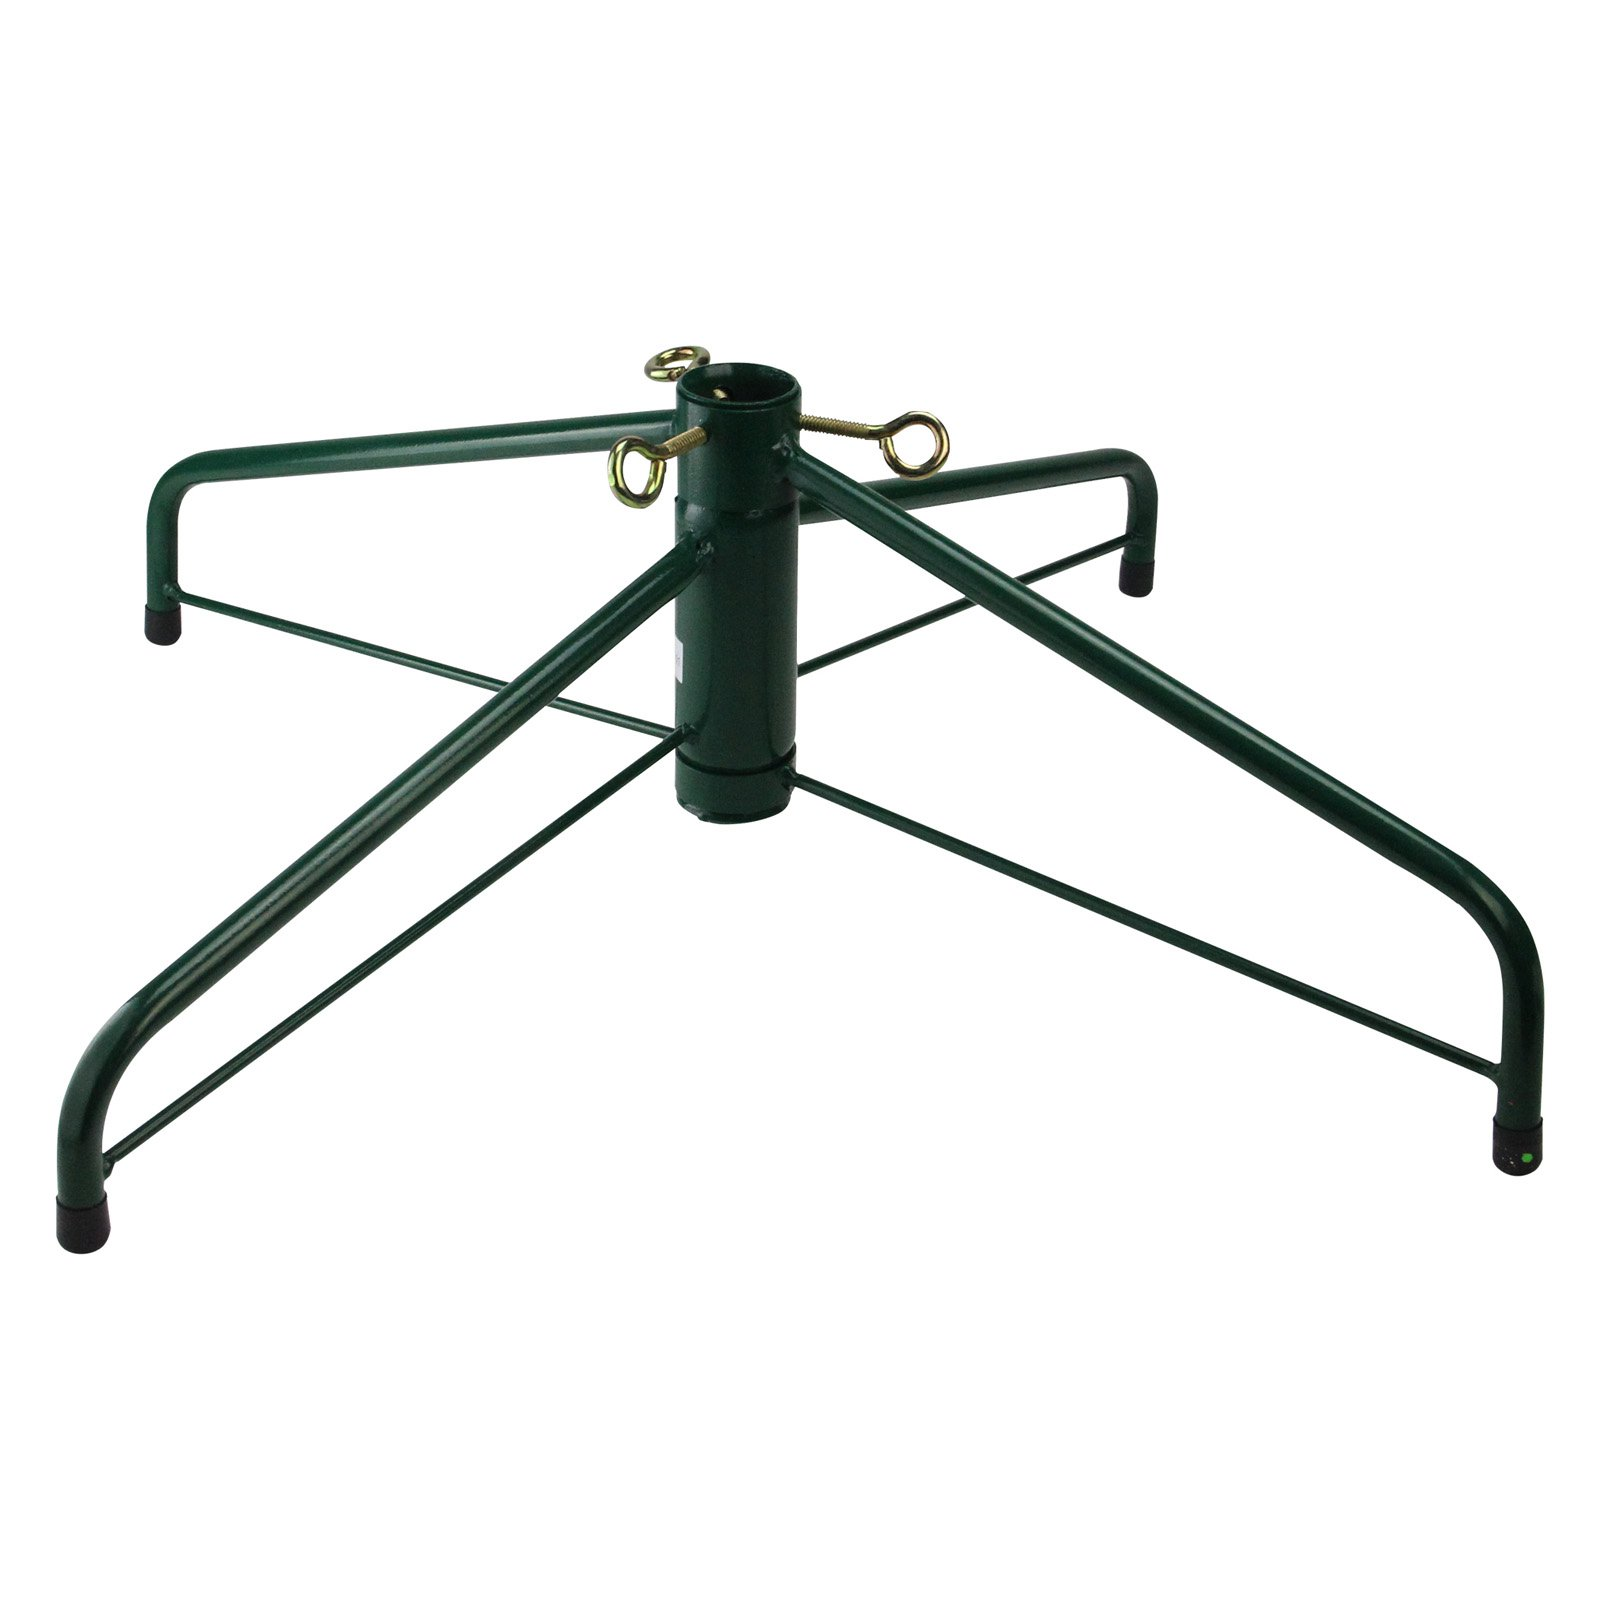 Jack-Post Ideal Brand Folding Christmas Tree Stand - For Artificial Trees Up To 8 ft. Tall